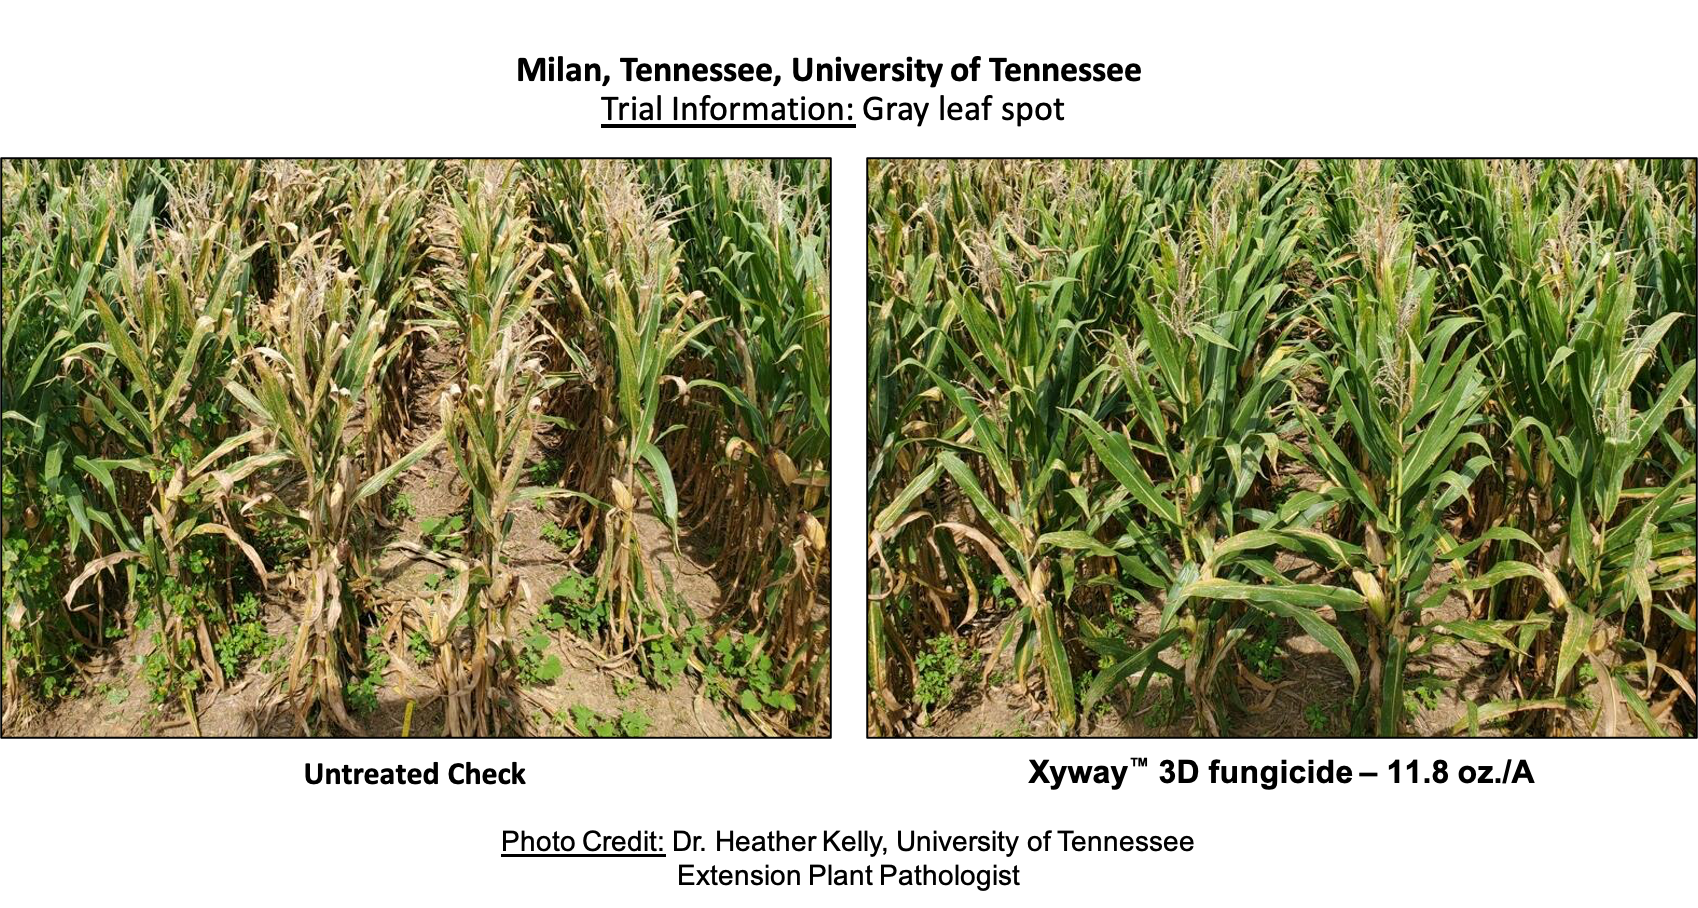 Xyway 3D Trial Foliar side by side comparison